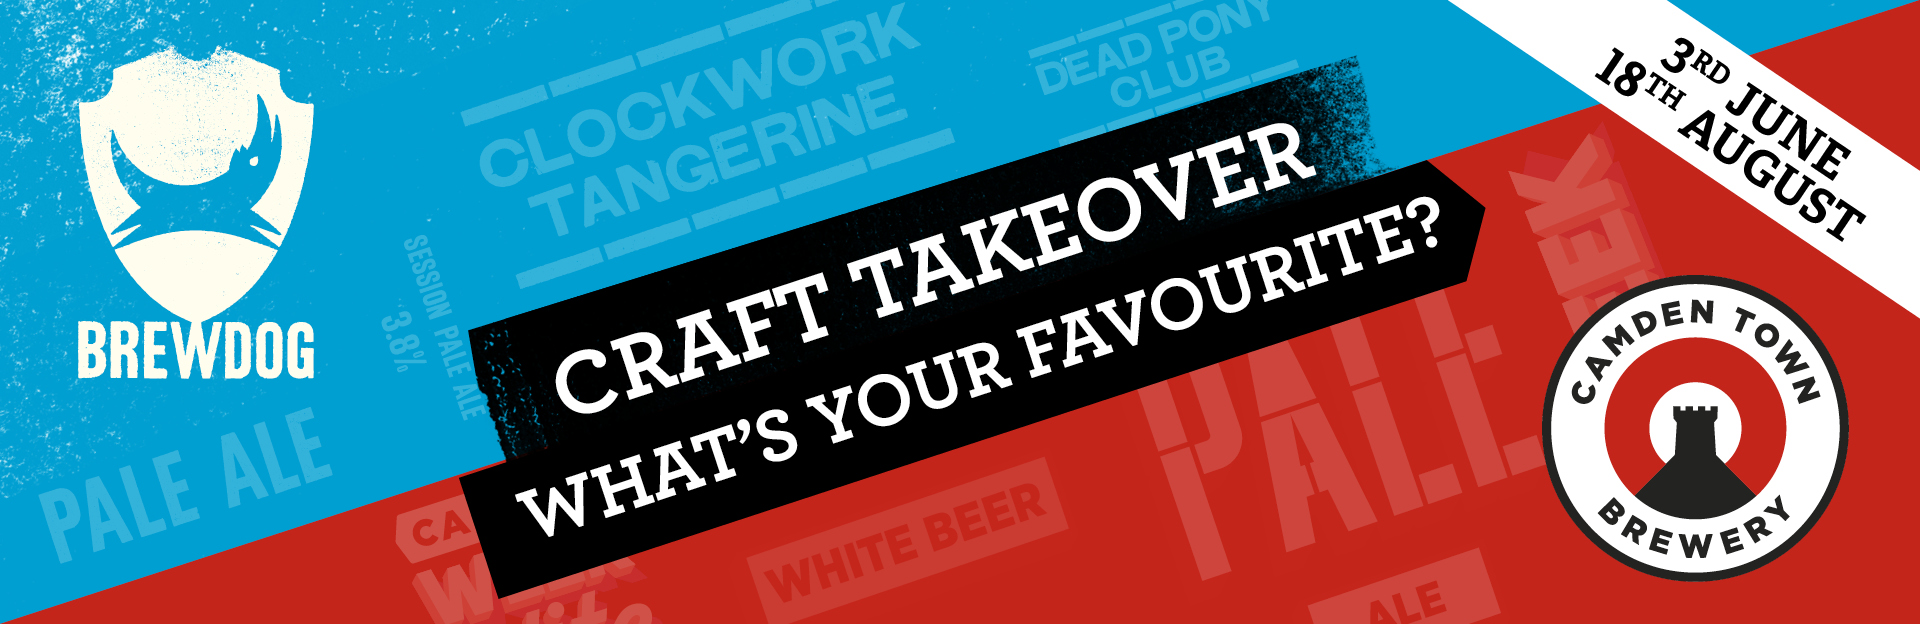 Craft Takeover at The Granary